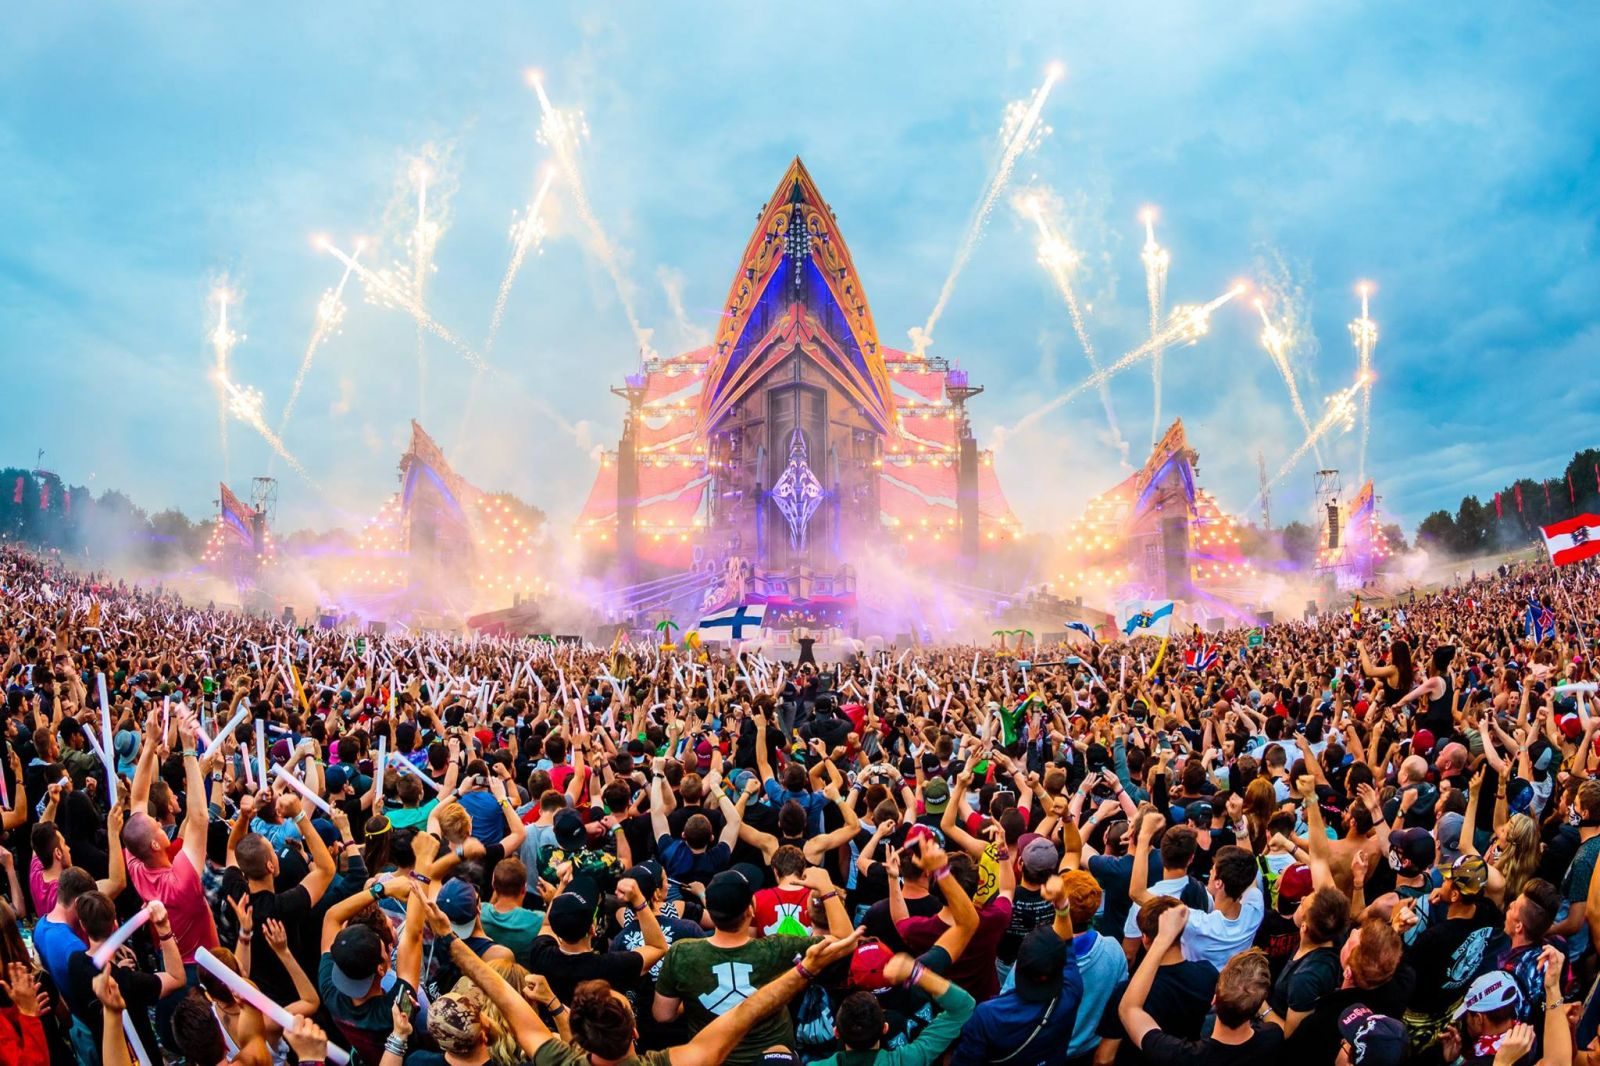 PARTY REPORT: Defqon.1 2017 - Victory Forver